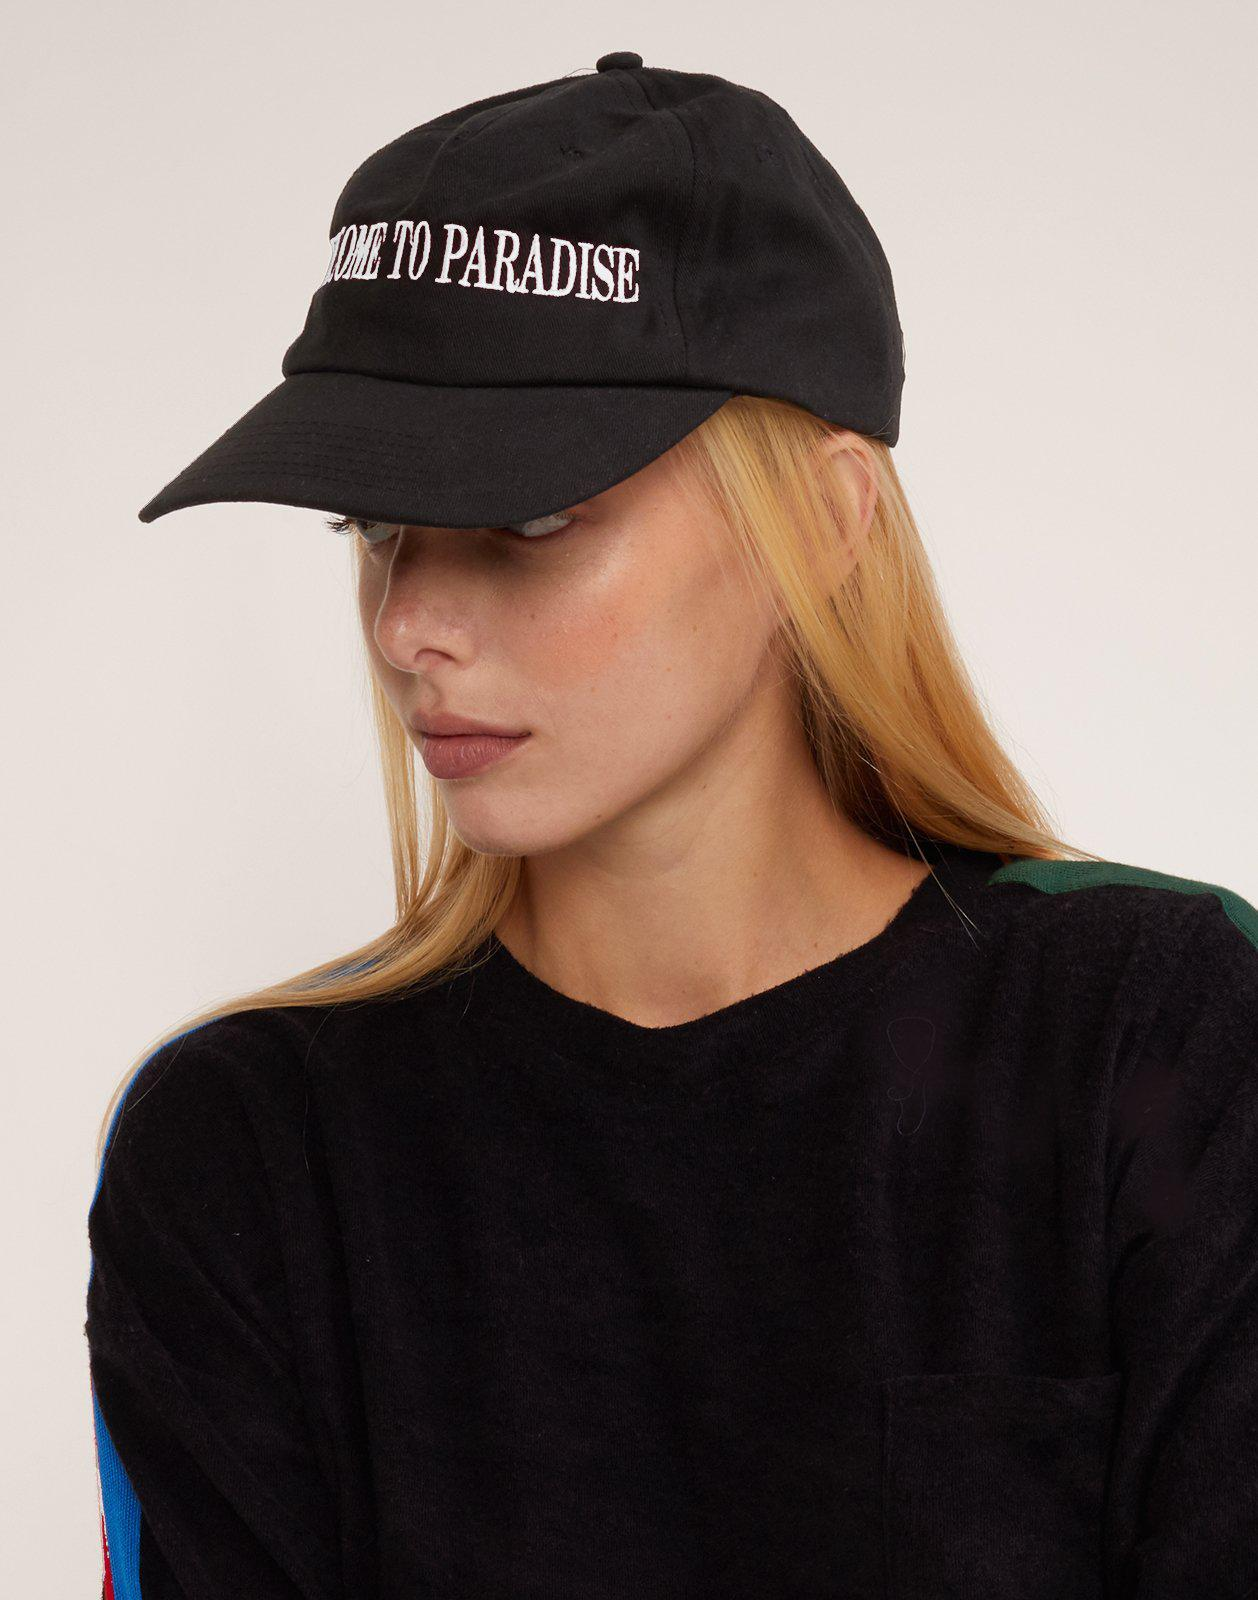 Lyst - Cynthia Rowley Welcome To Paradise Baseball Cap in Black 99ded12fbc87